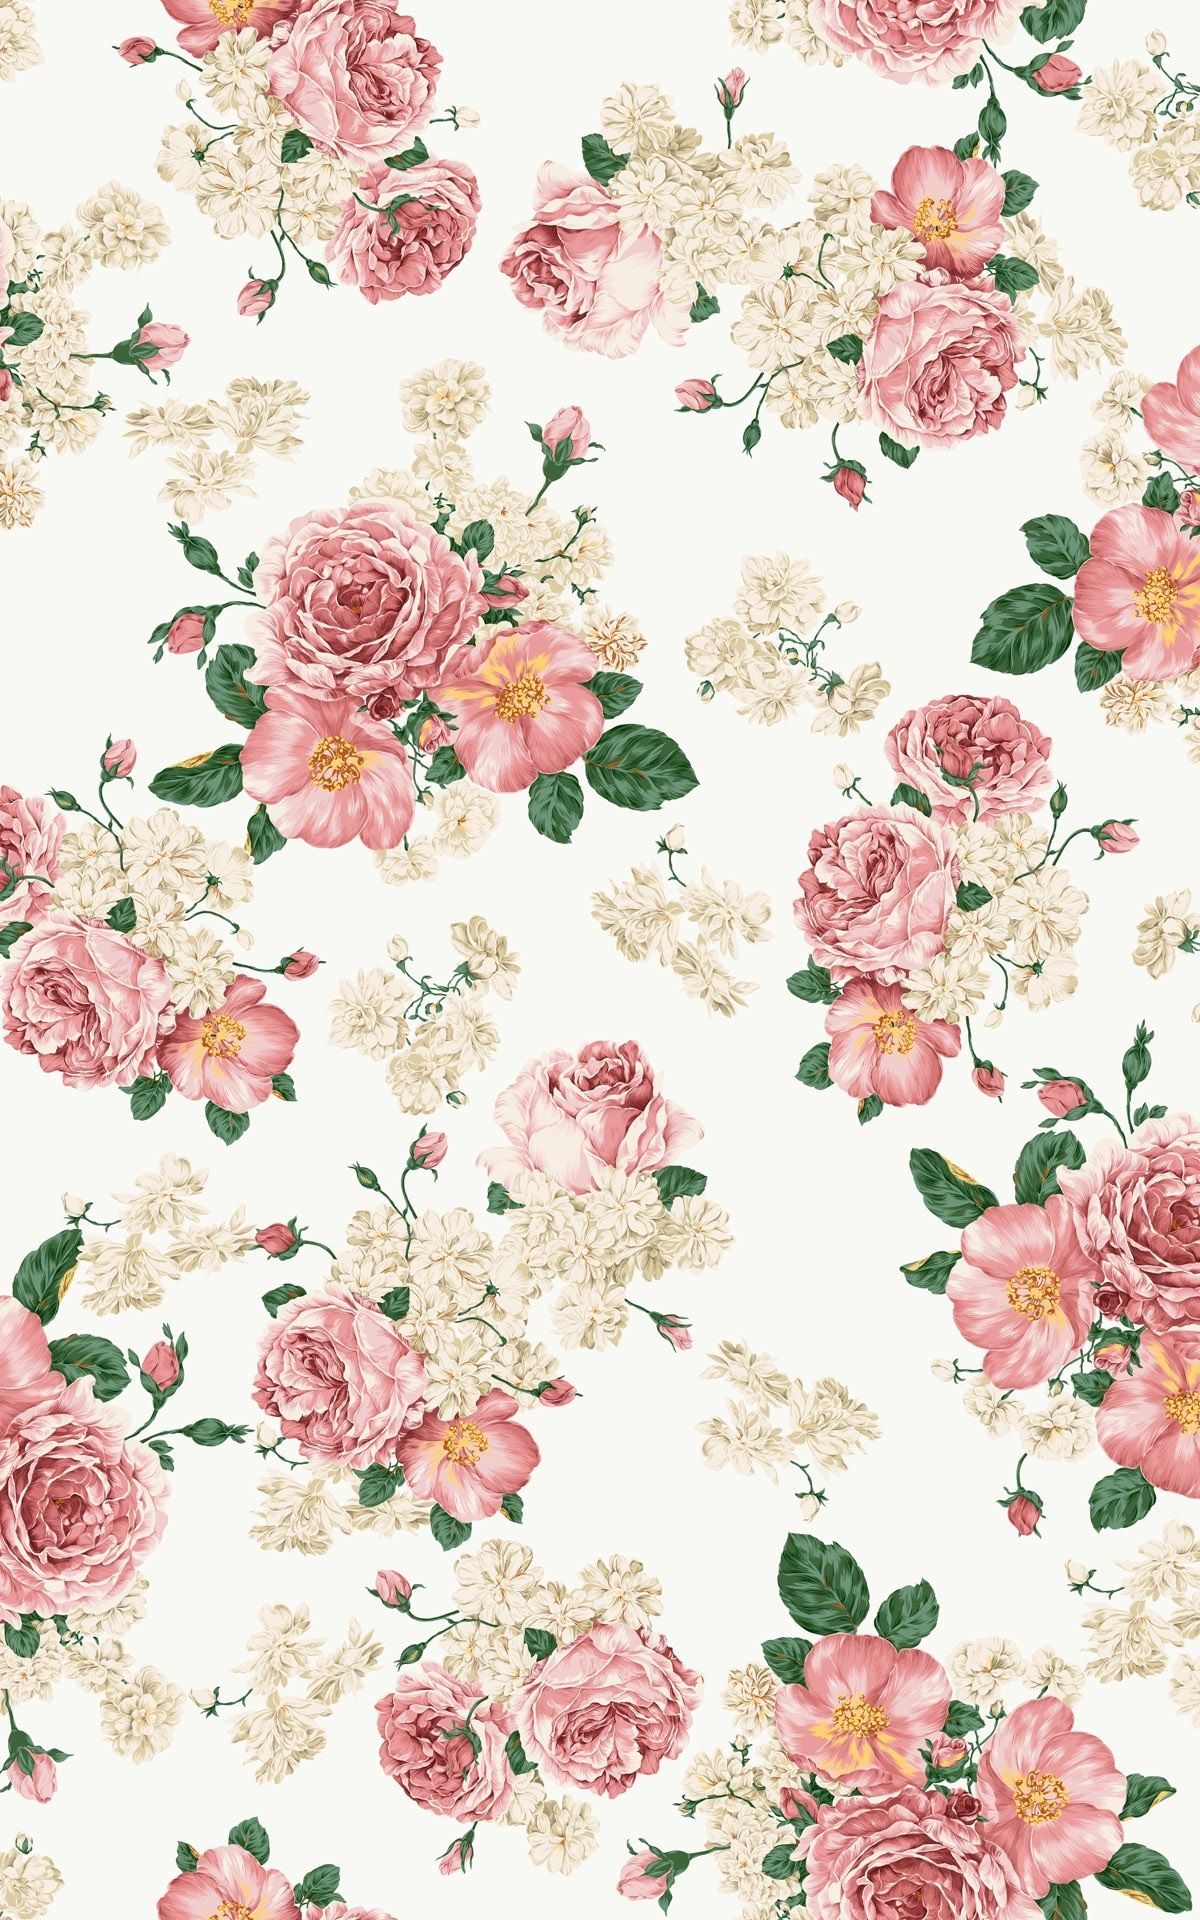 Floral Tumblr backgrounds photo